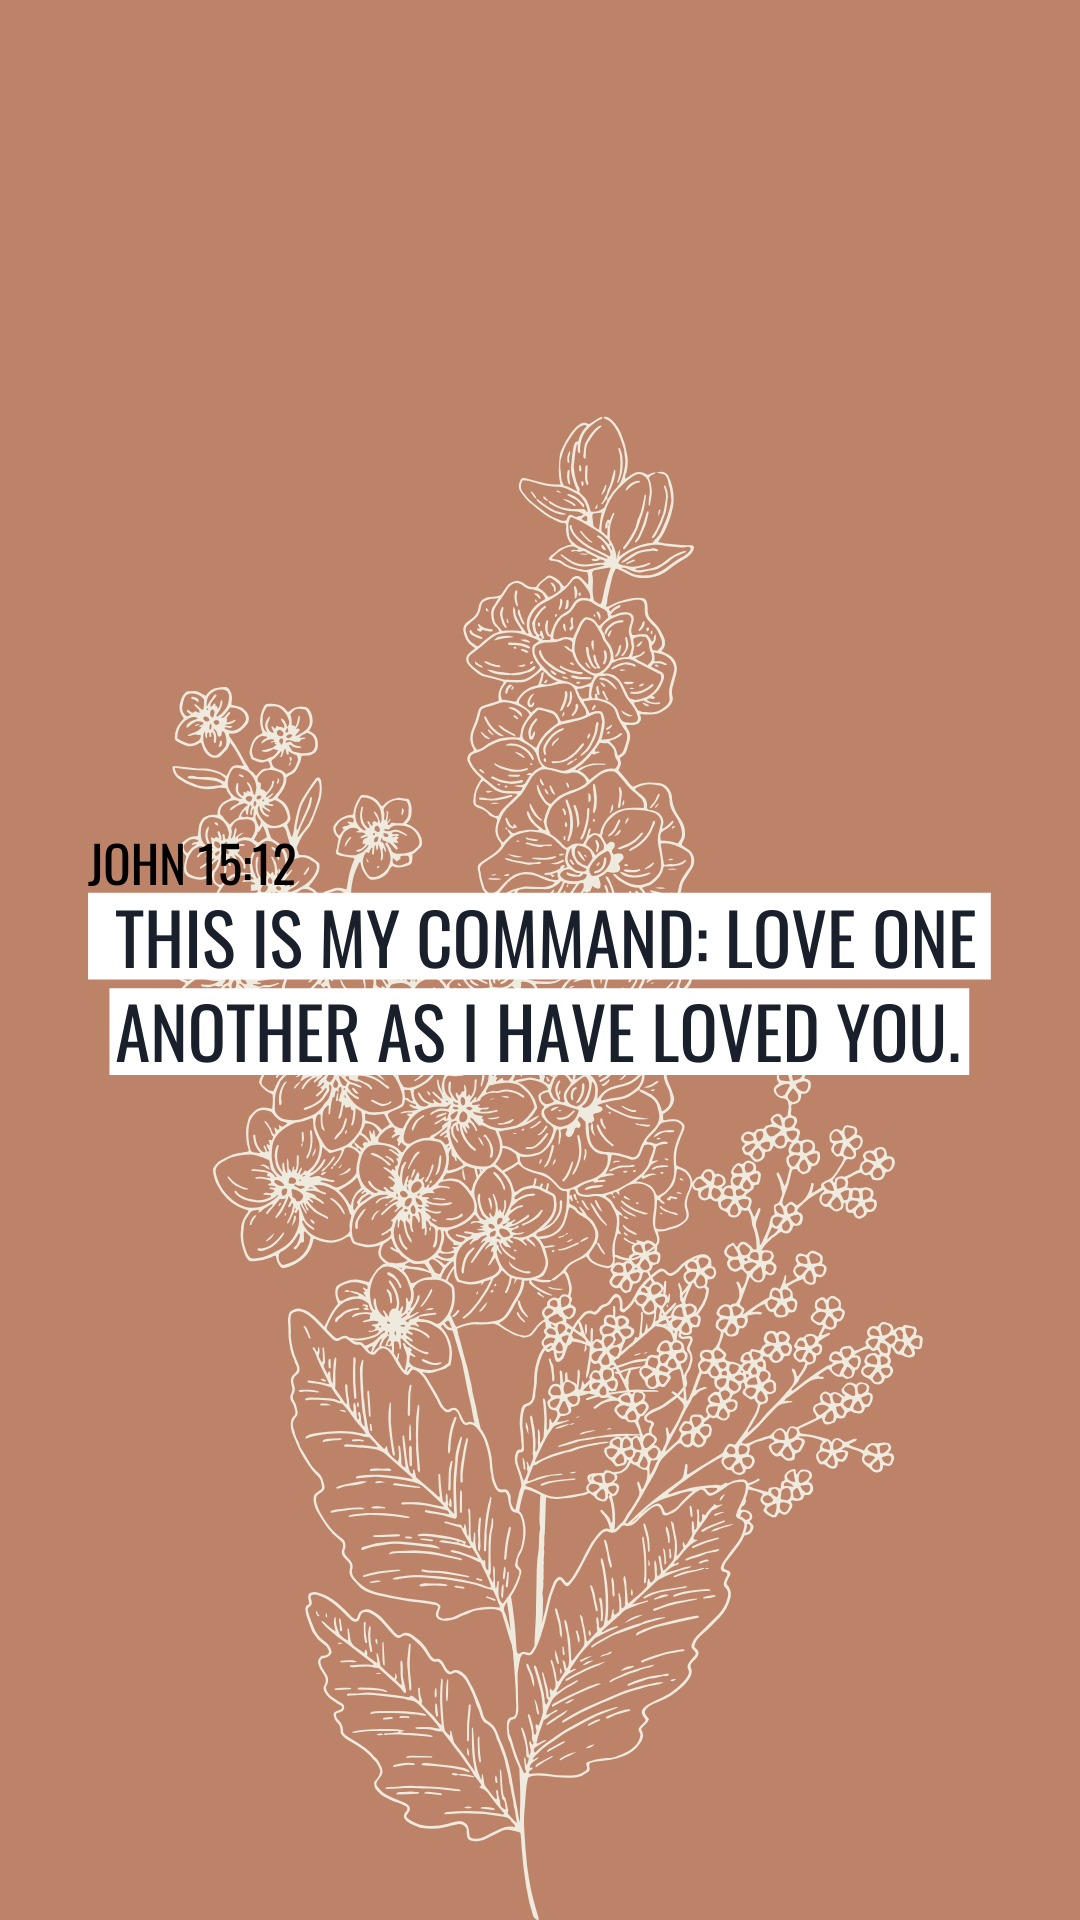 Christian Quote Wallpaper Christian Inspiration Background Love One Another Love One Another Quotes Love One Another Bible Christian Quotes